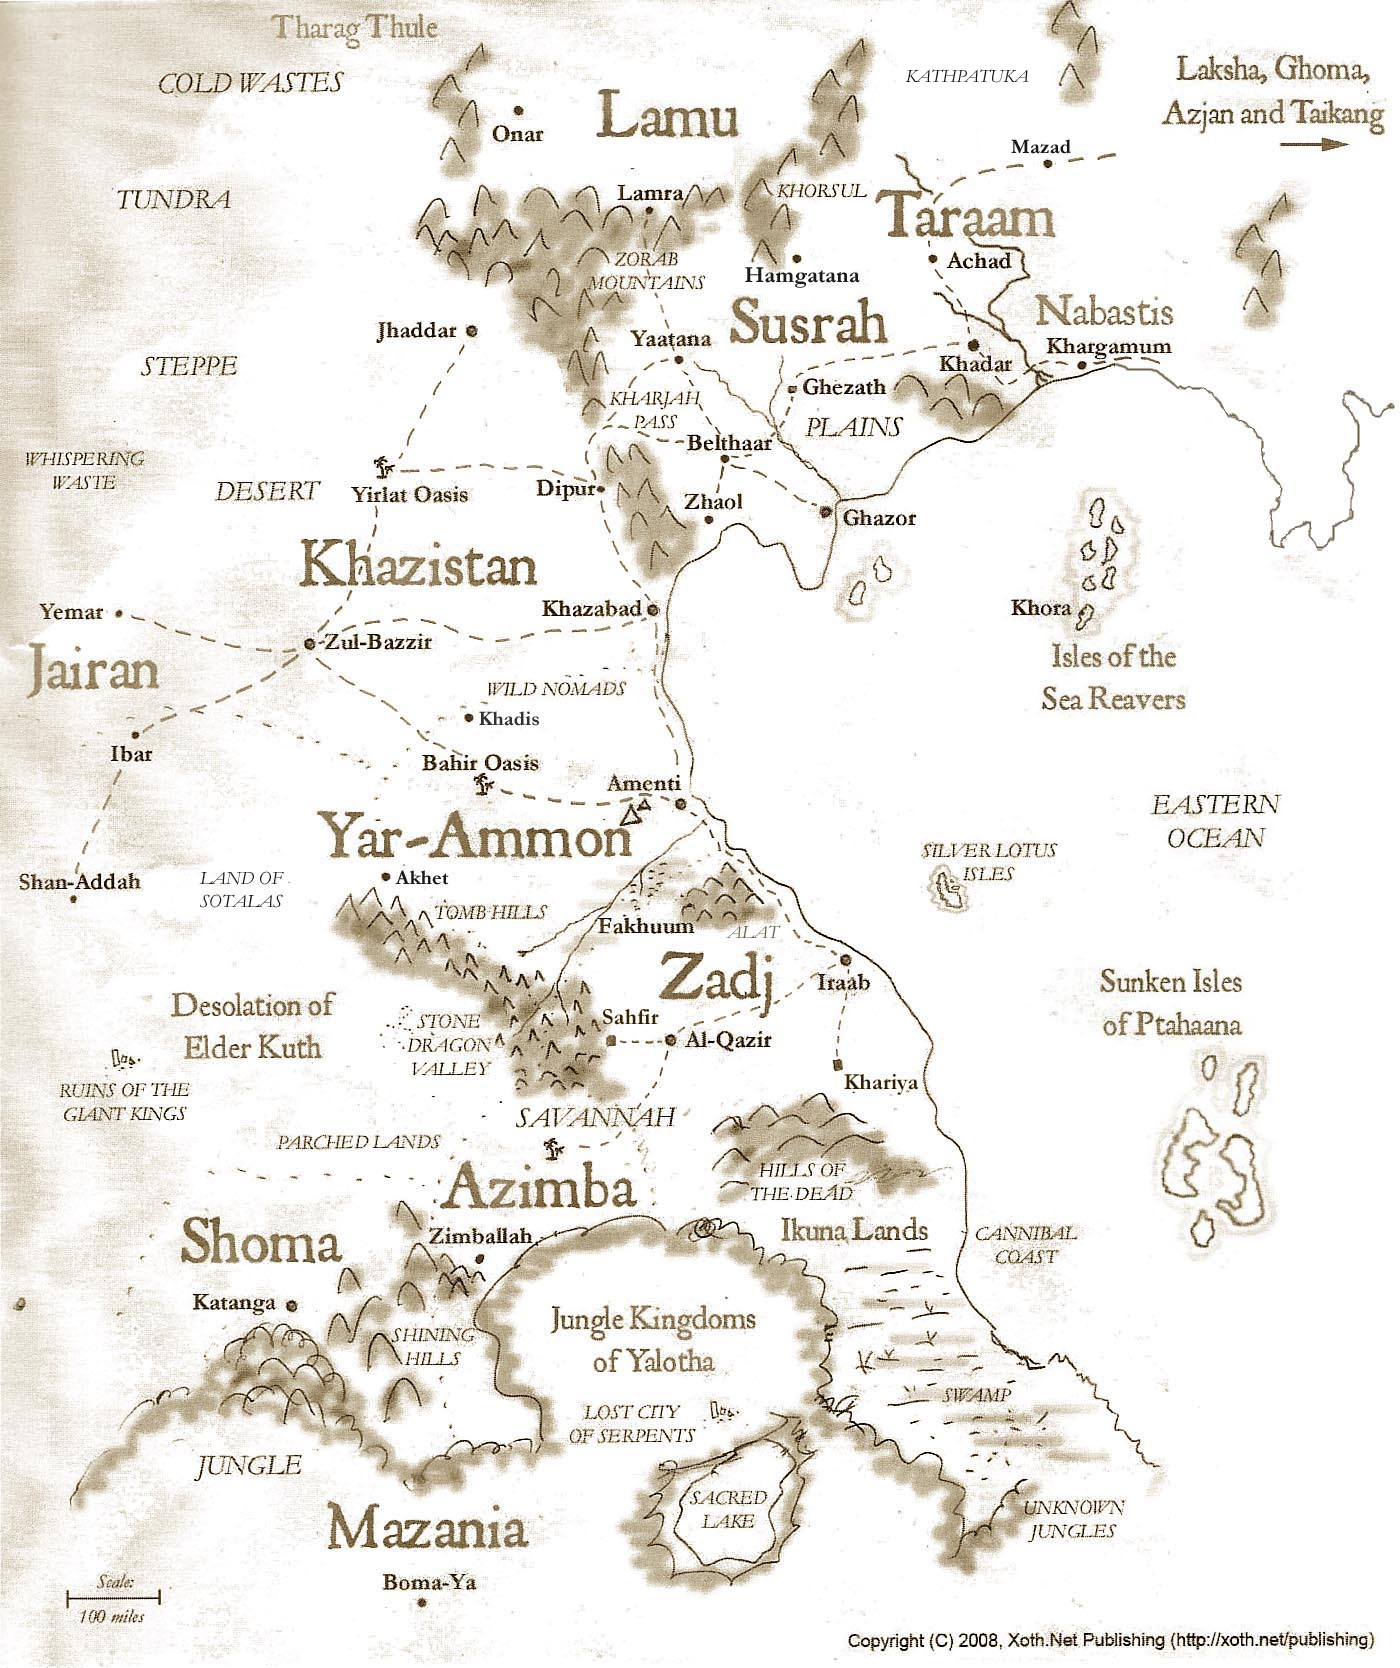 The World of Xoth map